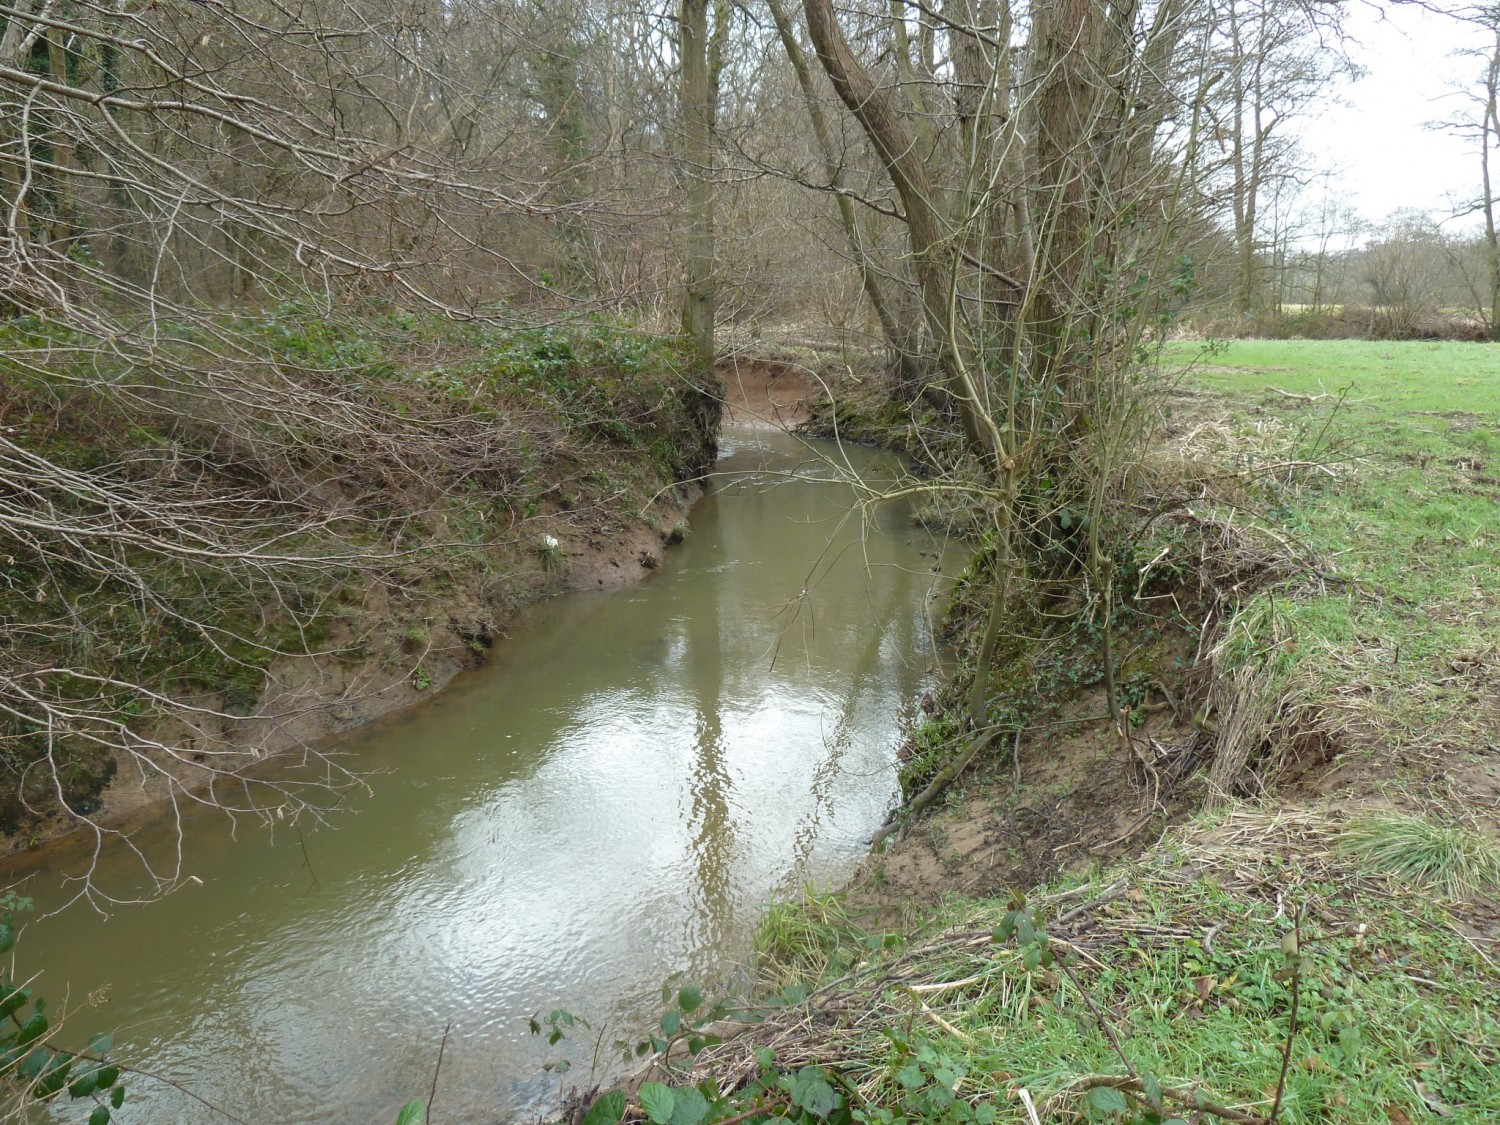 A Typical Section of the River Uck